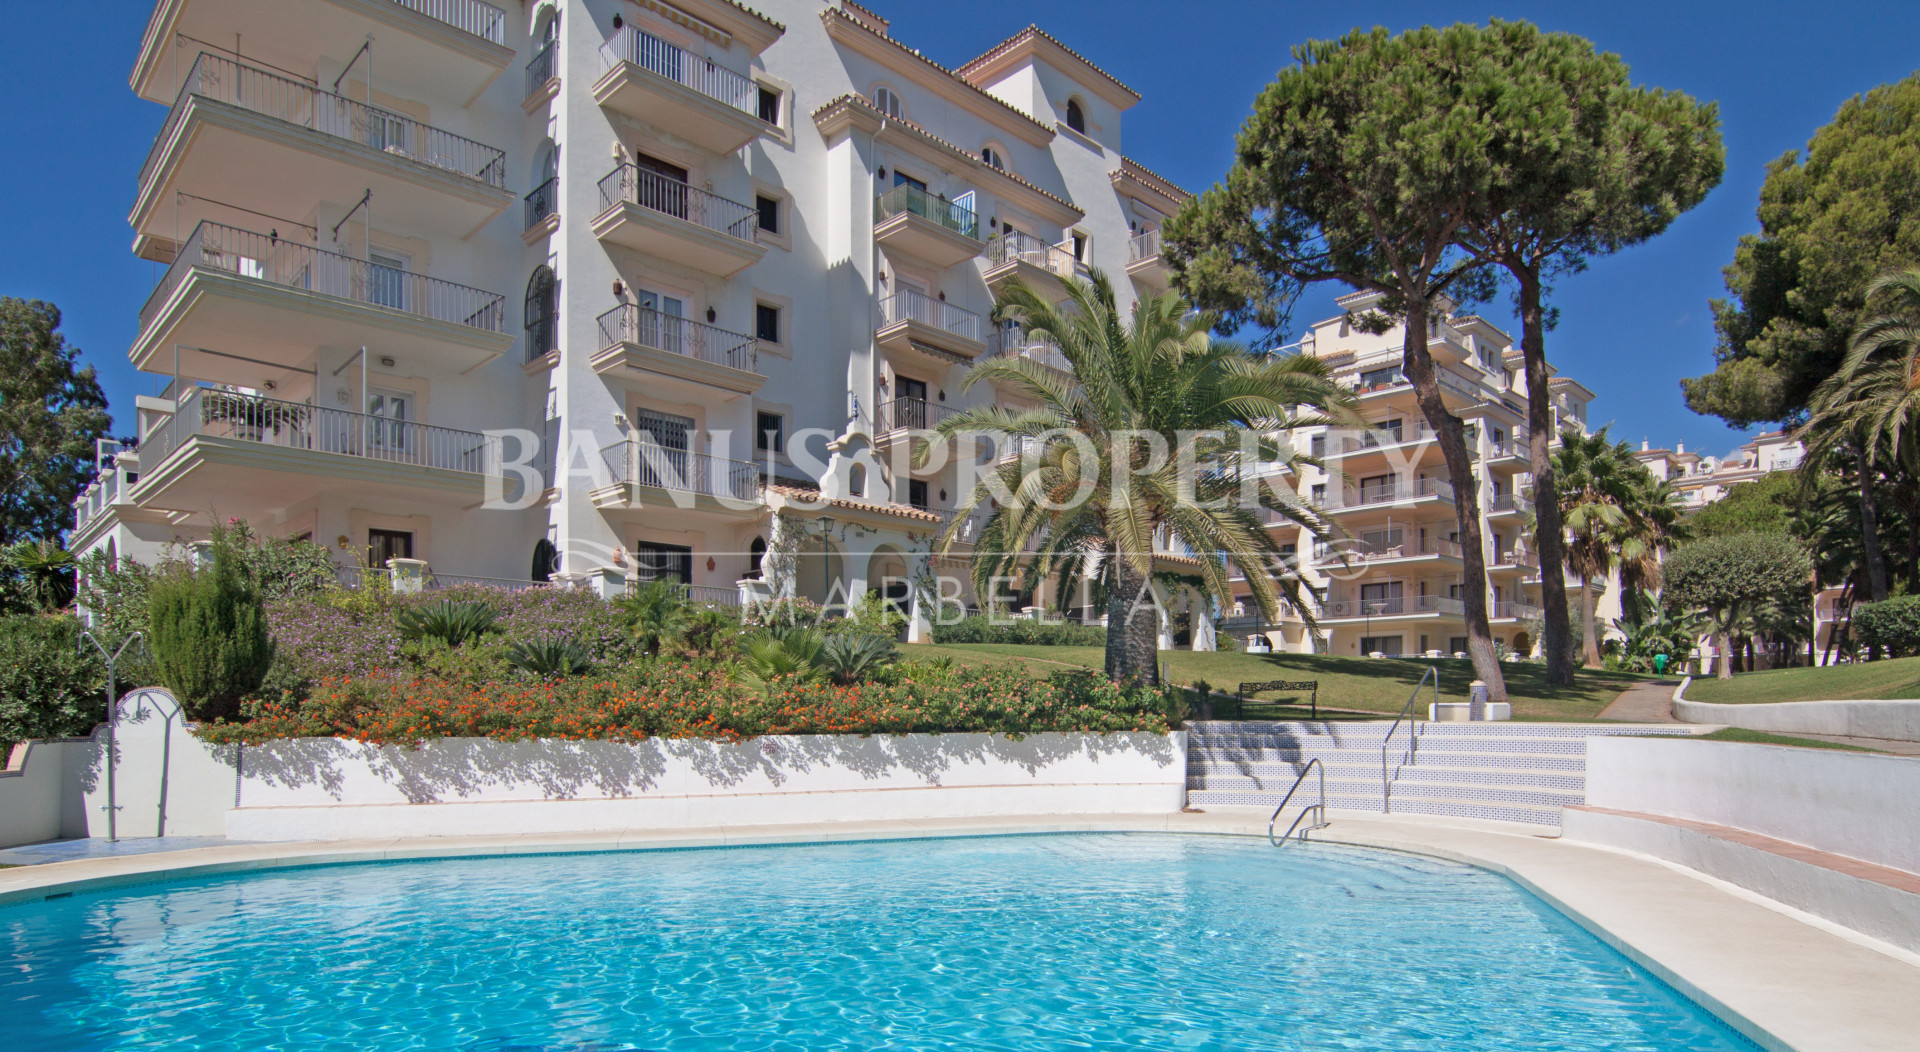 Two-bedroom penthouse with sea views for rent in Andalucía del Mar, Puerto Banús